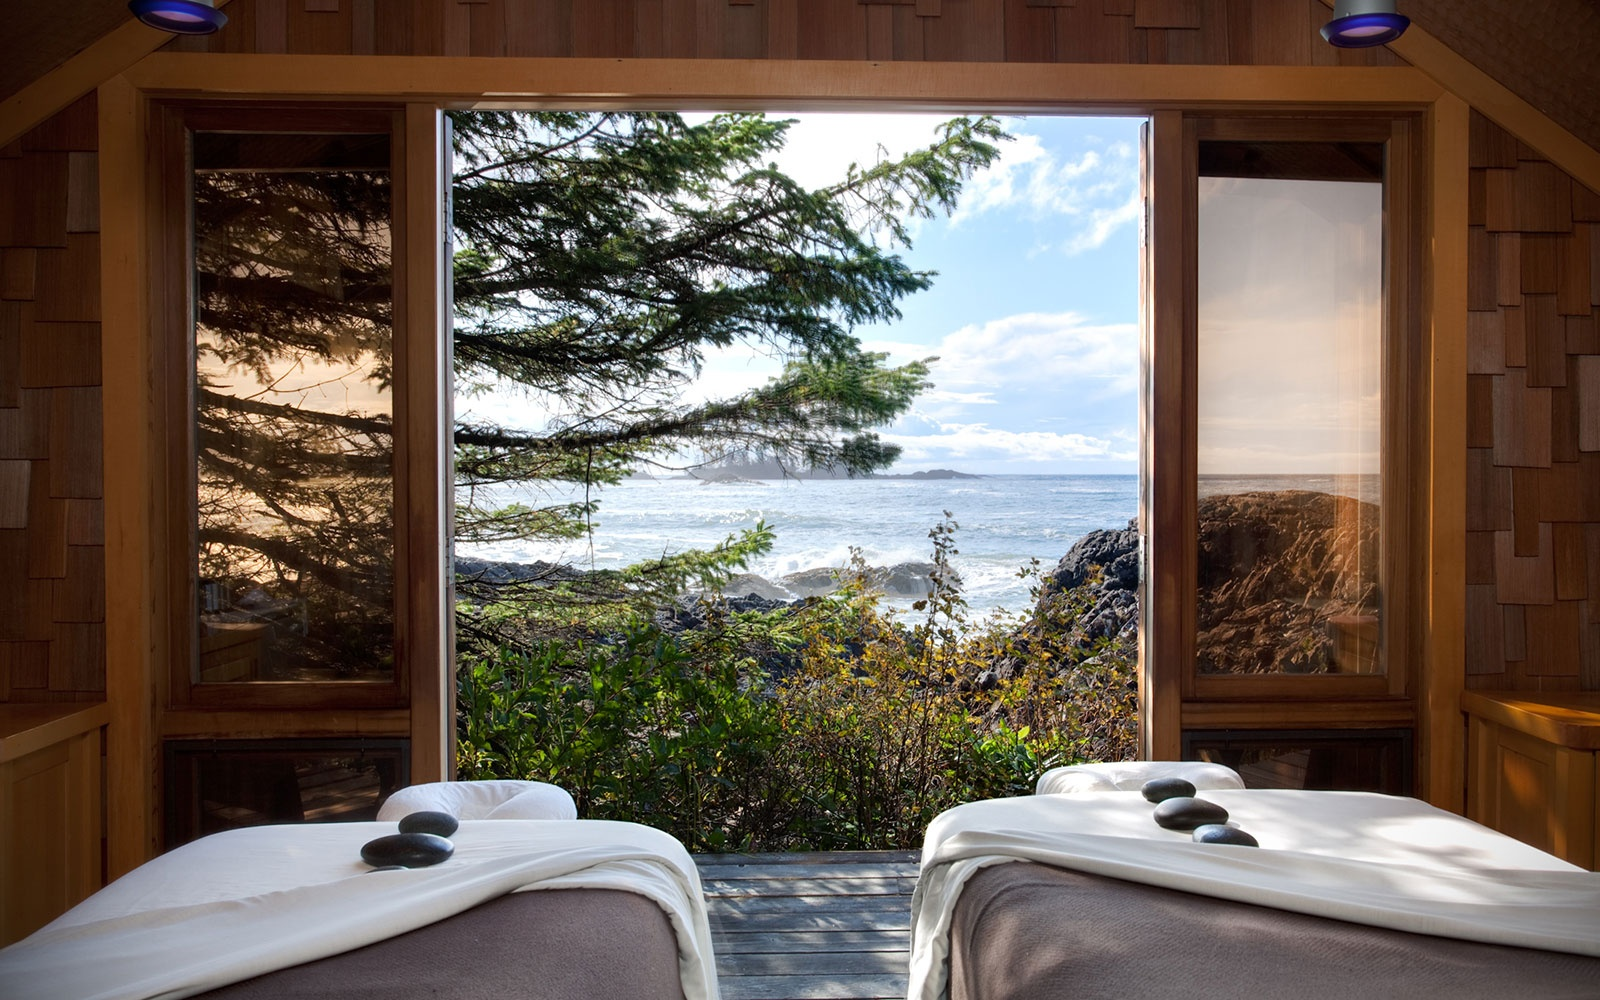 massage room overlooking the ocean at The Wickaninnish Inn, Tofino, BC